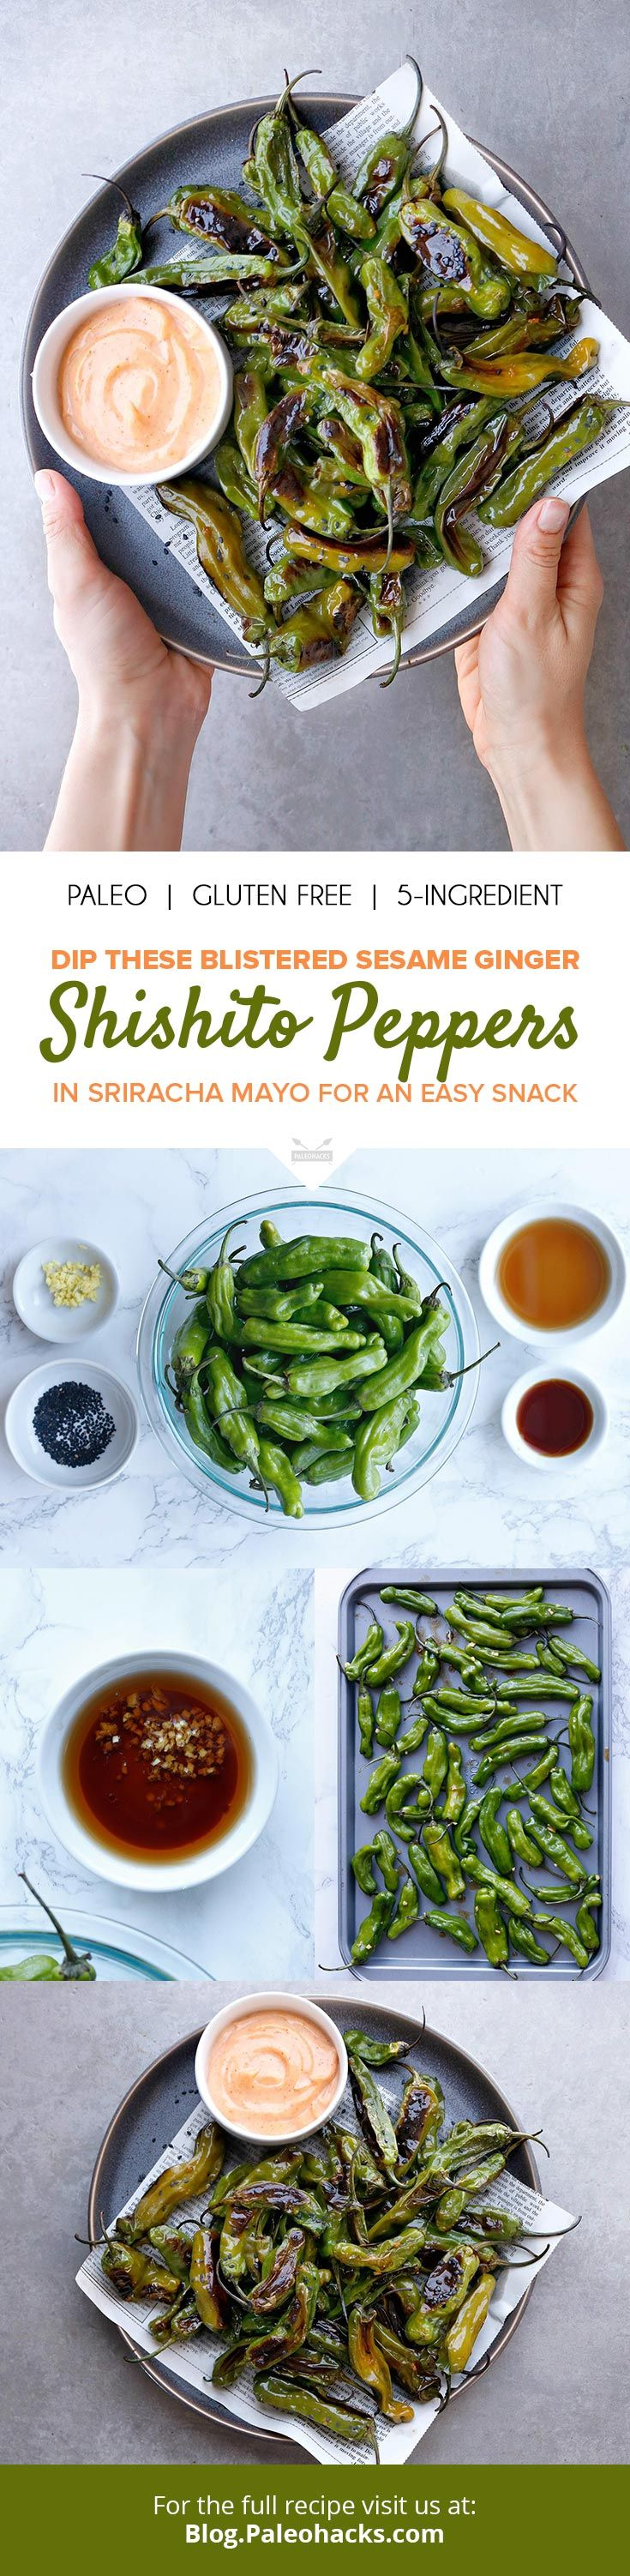 To bring out the flavor of the Shishito peppers, this easy recipe tosses them in a sweet and salty sauce made from toasted sesame seed oil, coconut aminos and fresh ginger. get the full recipe here: http://paleo.co/shishitopeppers